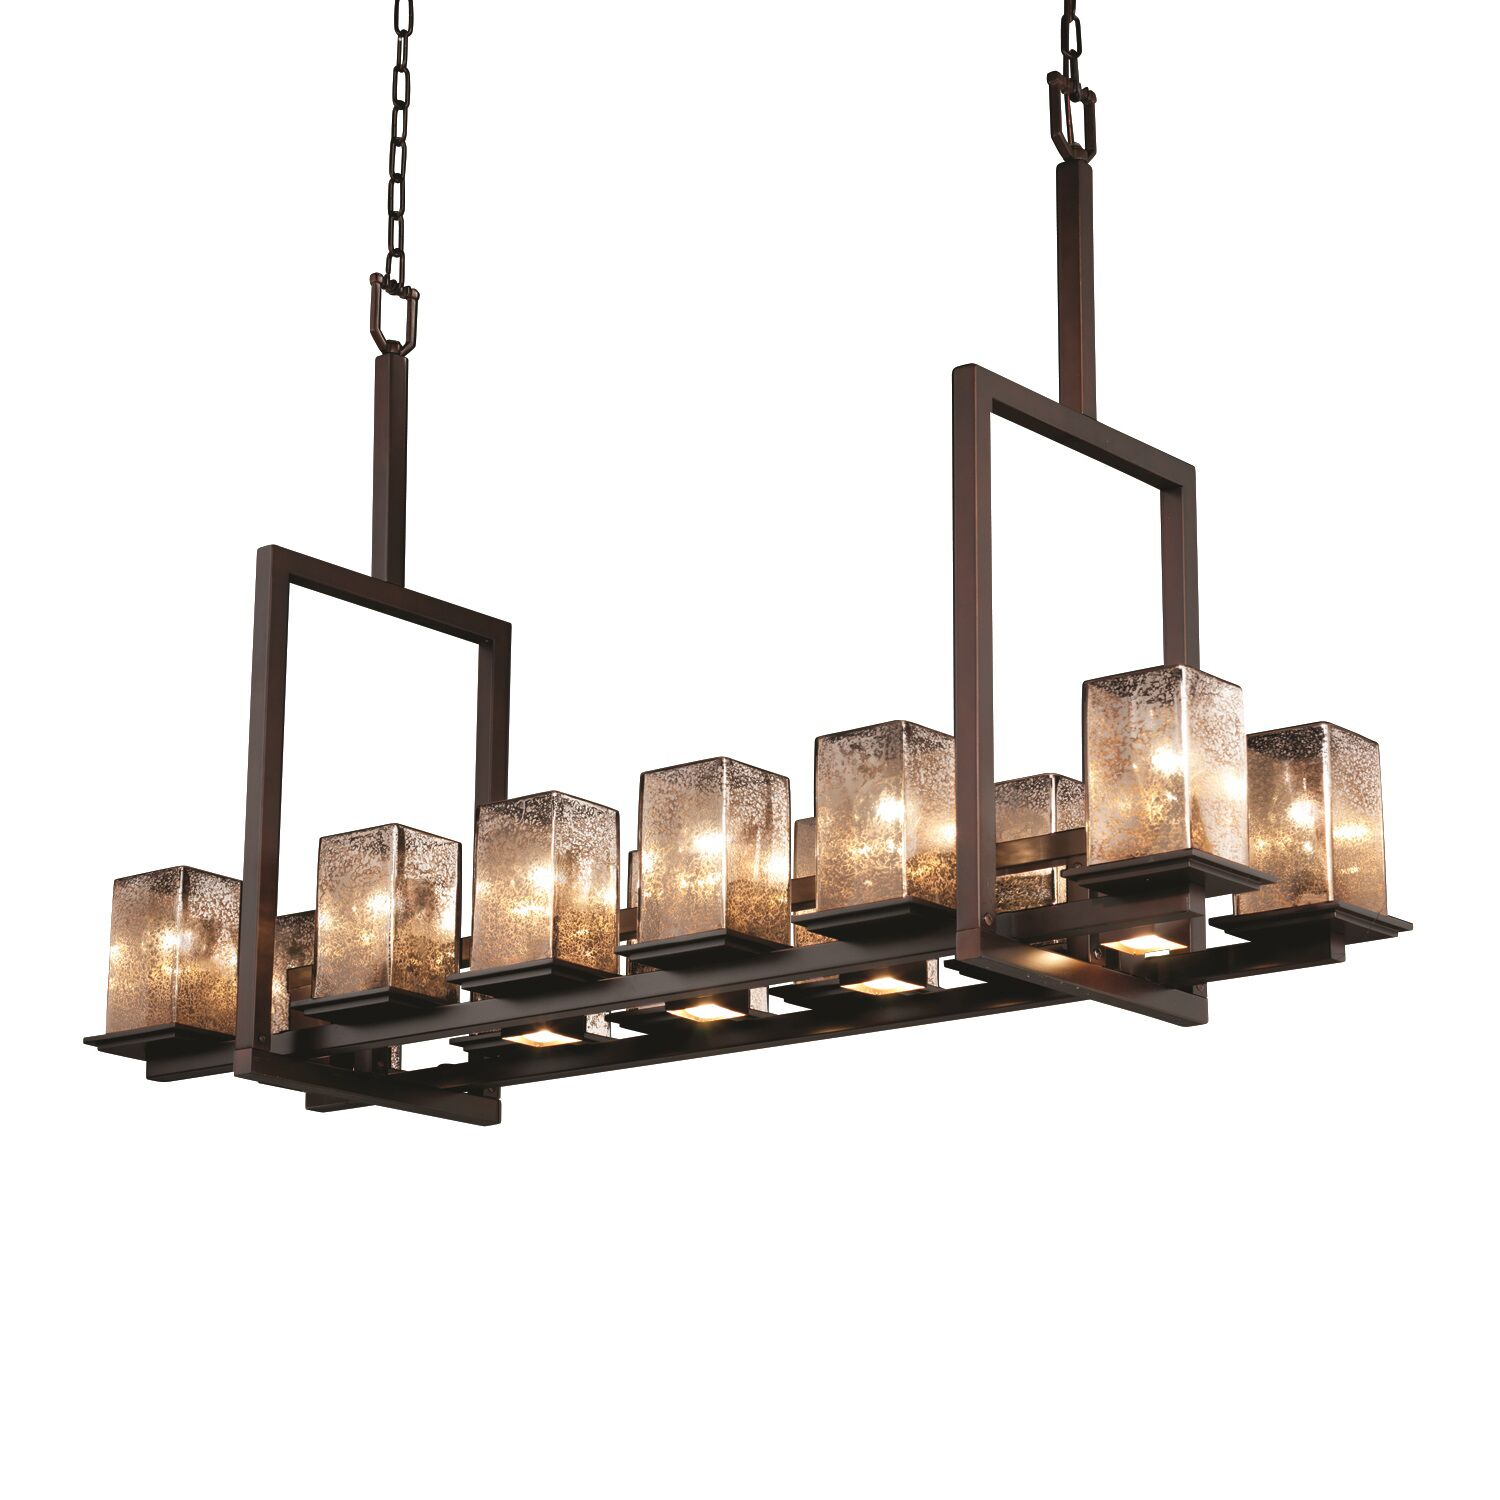 Montana Fusion 12-Up and 5-Down Light Tall Bridge Chandelier Metal Finish: Matte Black, Shade Color: Mercury